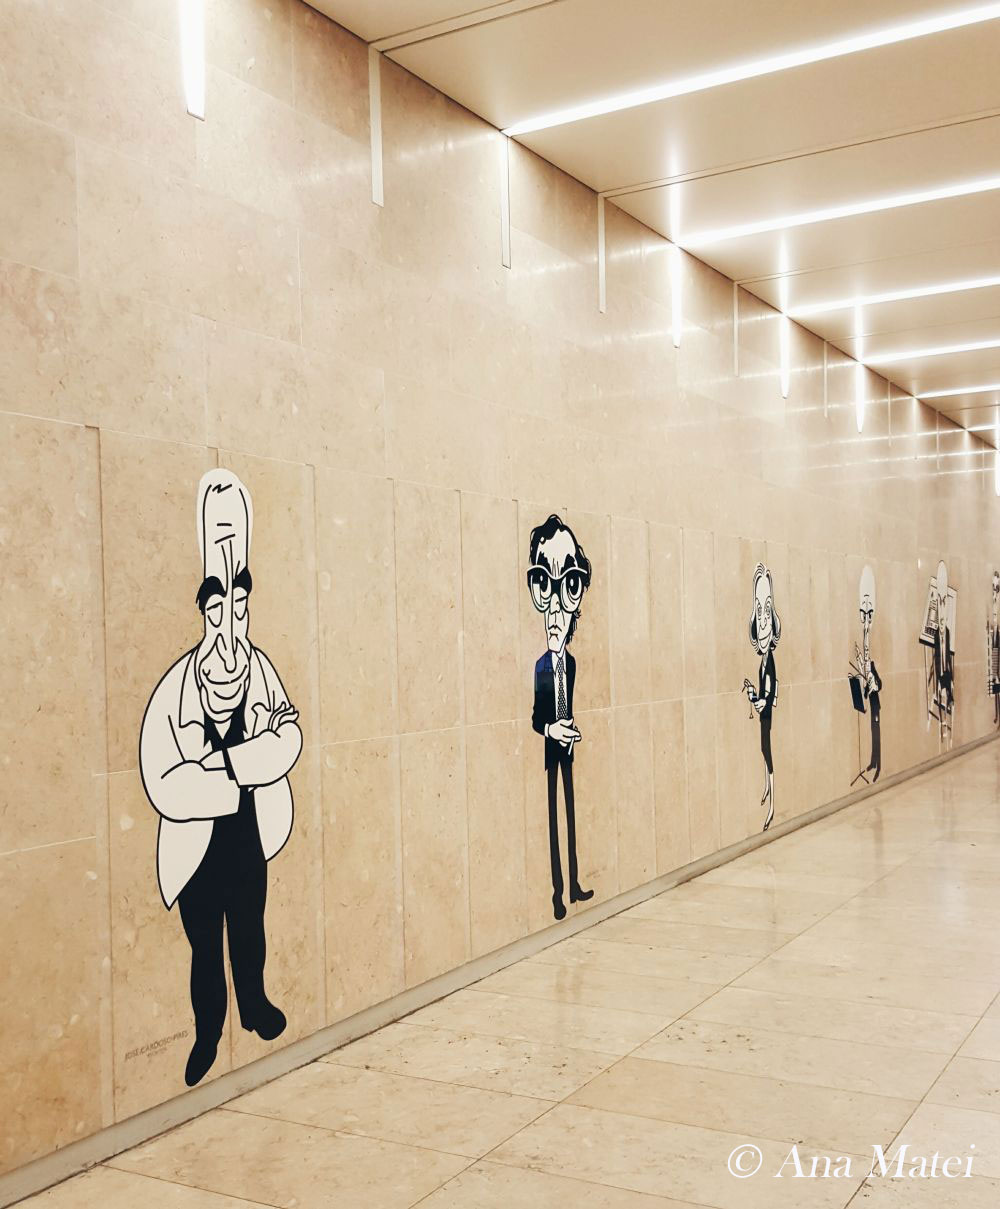 street-art-in-Lisbon-s-Airport---pic-by-Ana-Matei